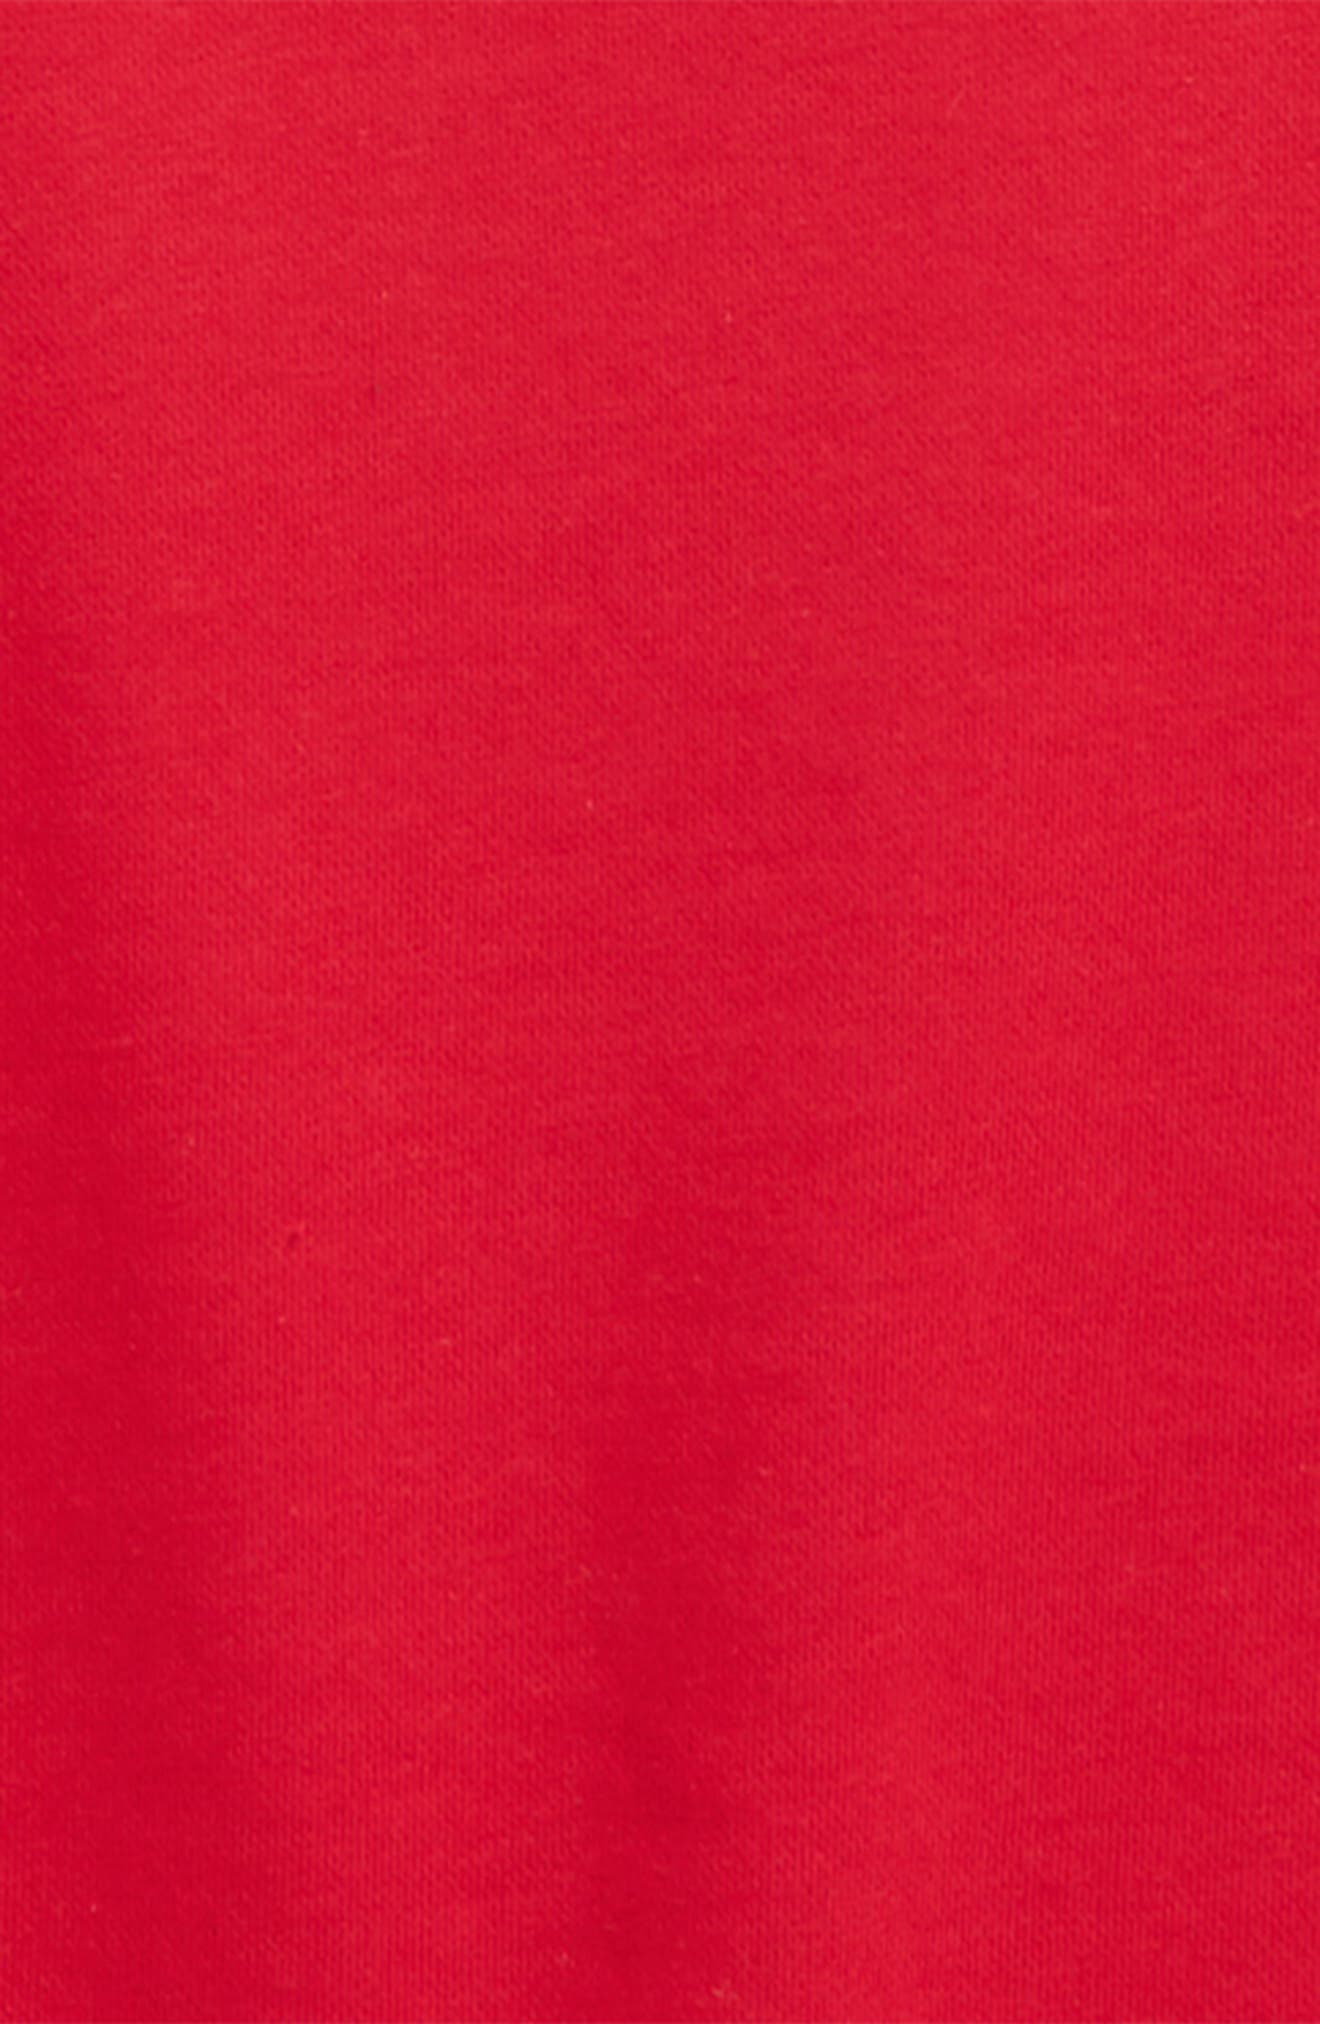 Lantern Sleeve Top,                             Alternate thumbnail 2, color,                             Red